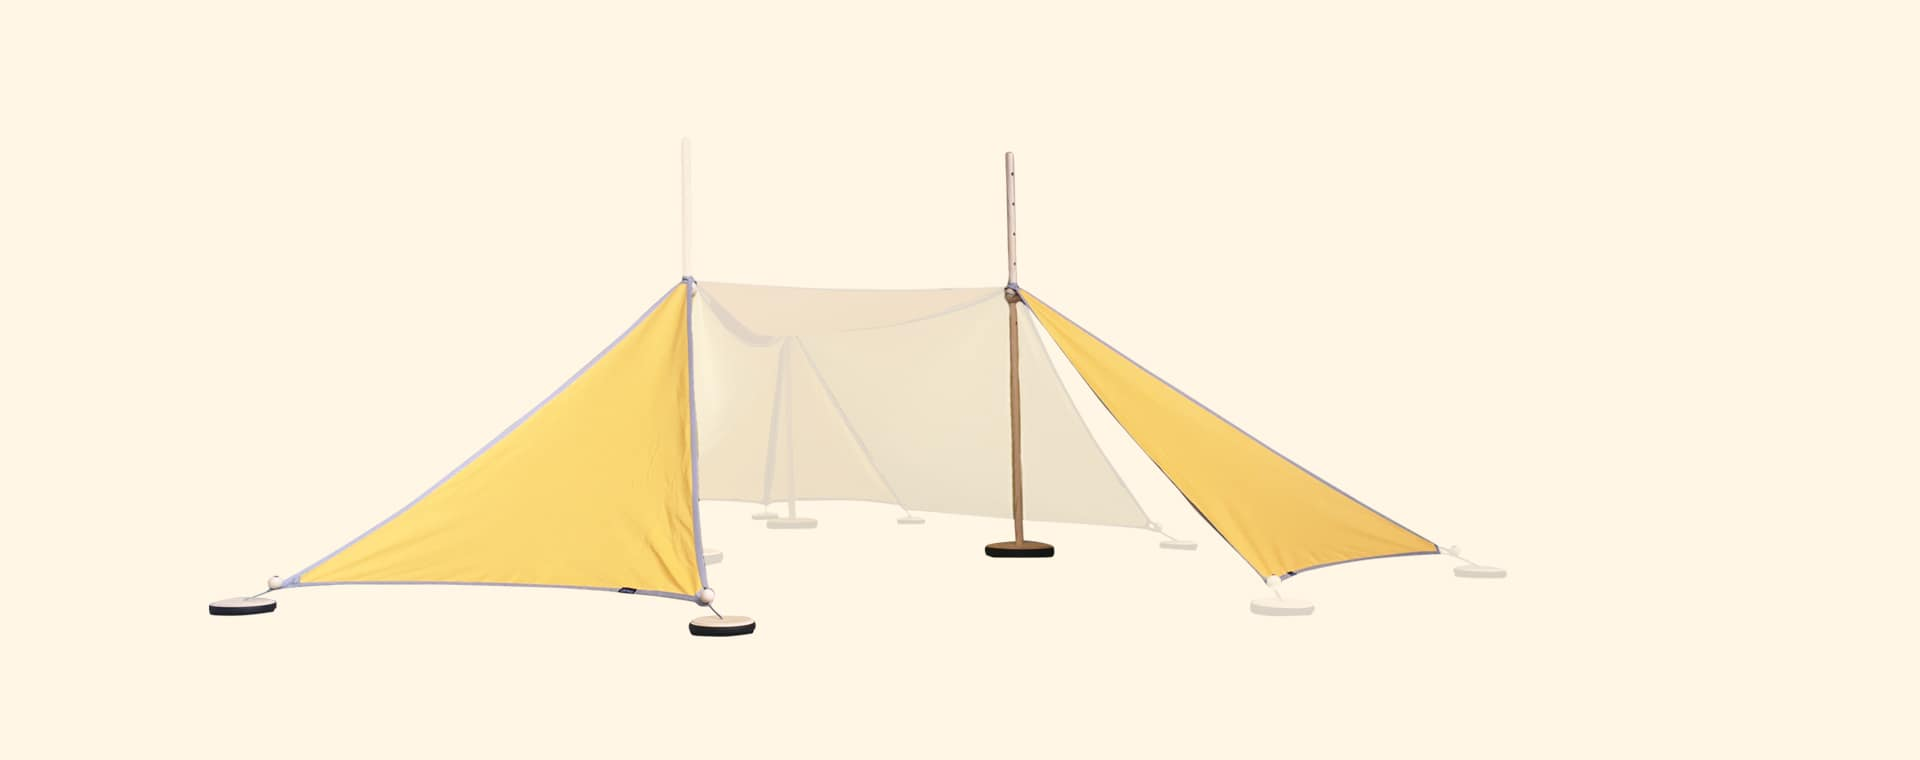 Yellow abel Tent Extension Kit 2-3 with Pegs & Weights